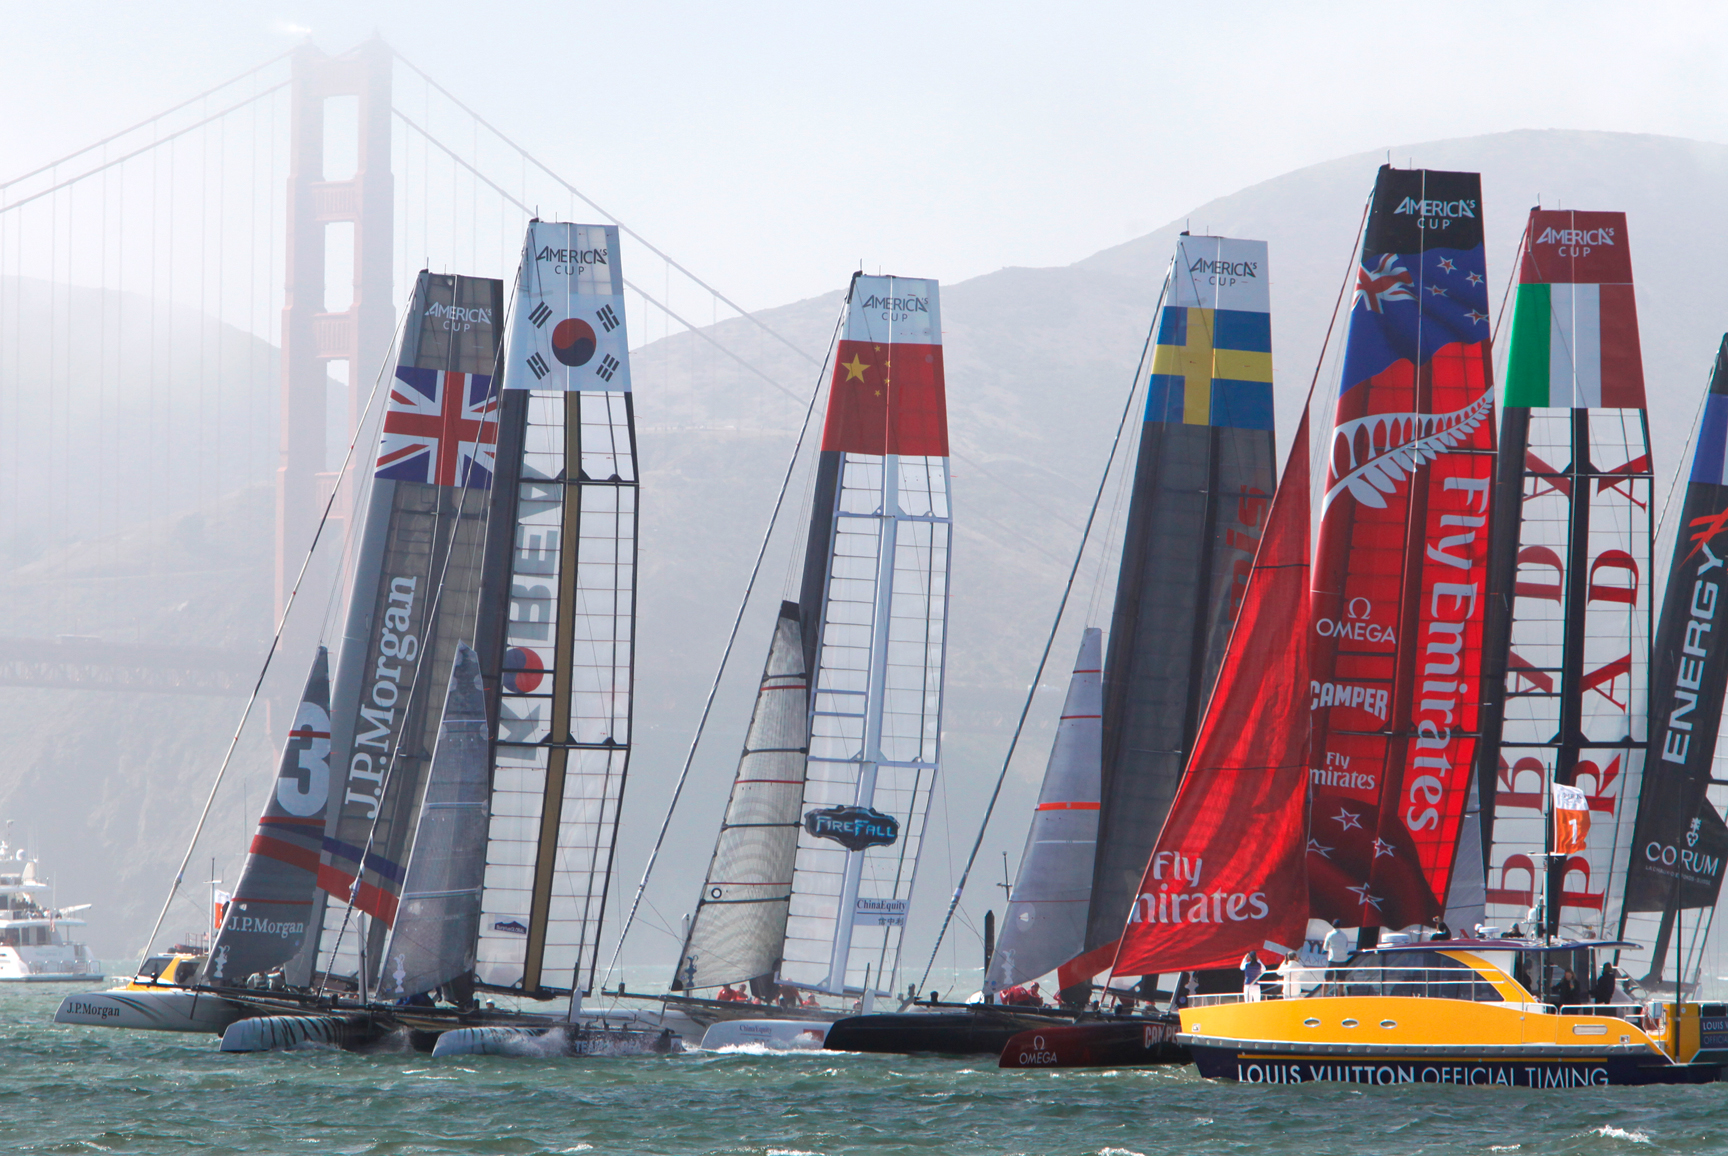 America's Cup World Series in San Francisco 2013